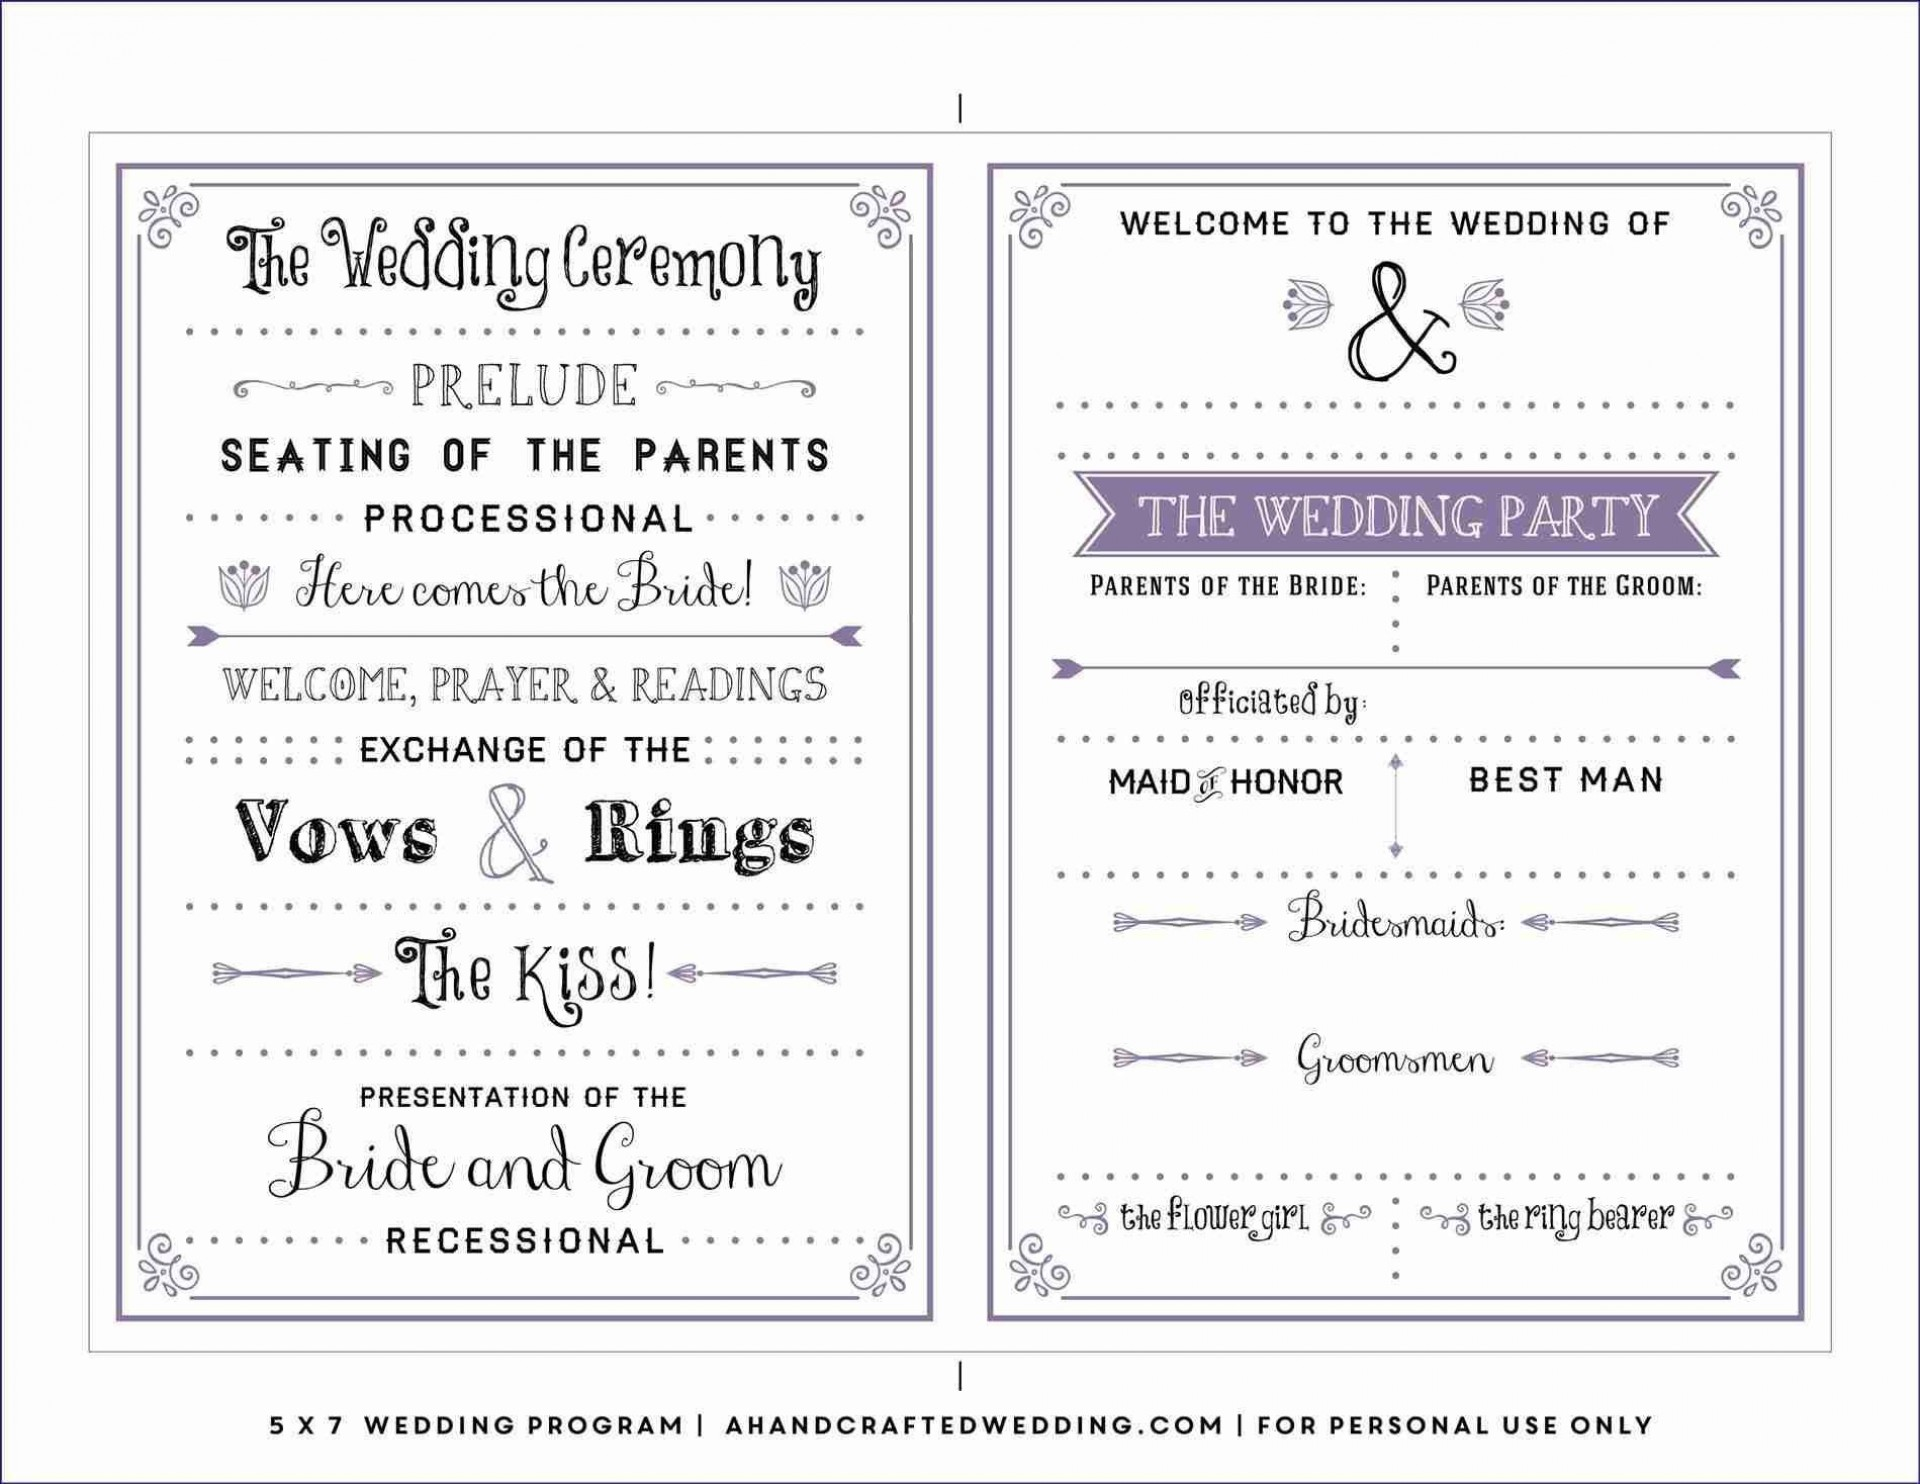 006 Excellent Free Downloadable Wedding Program Template High Definition  Templates That Can Be Printed Printable Fall Reception1920